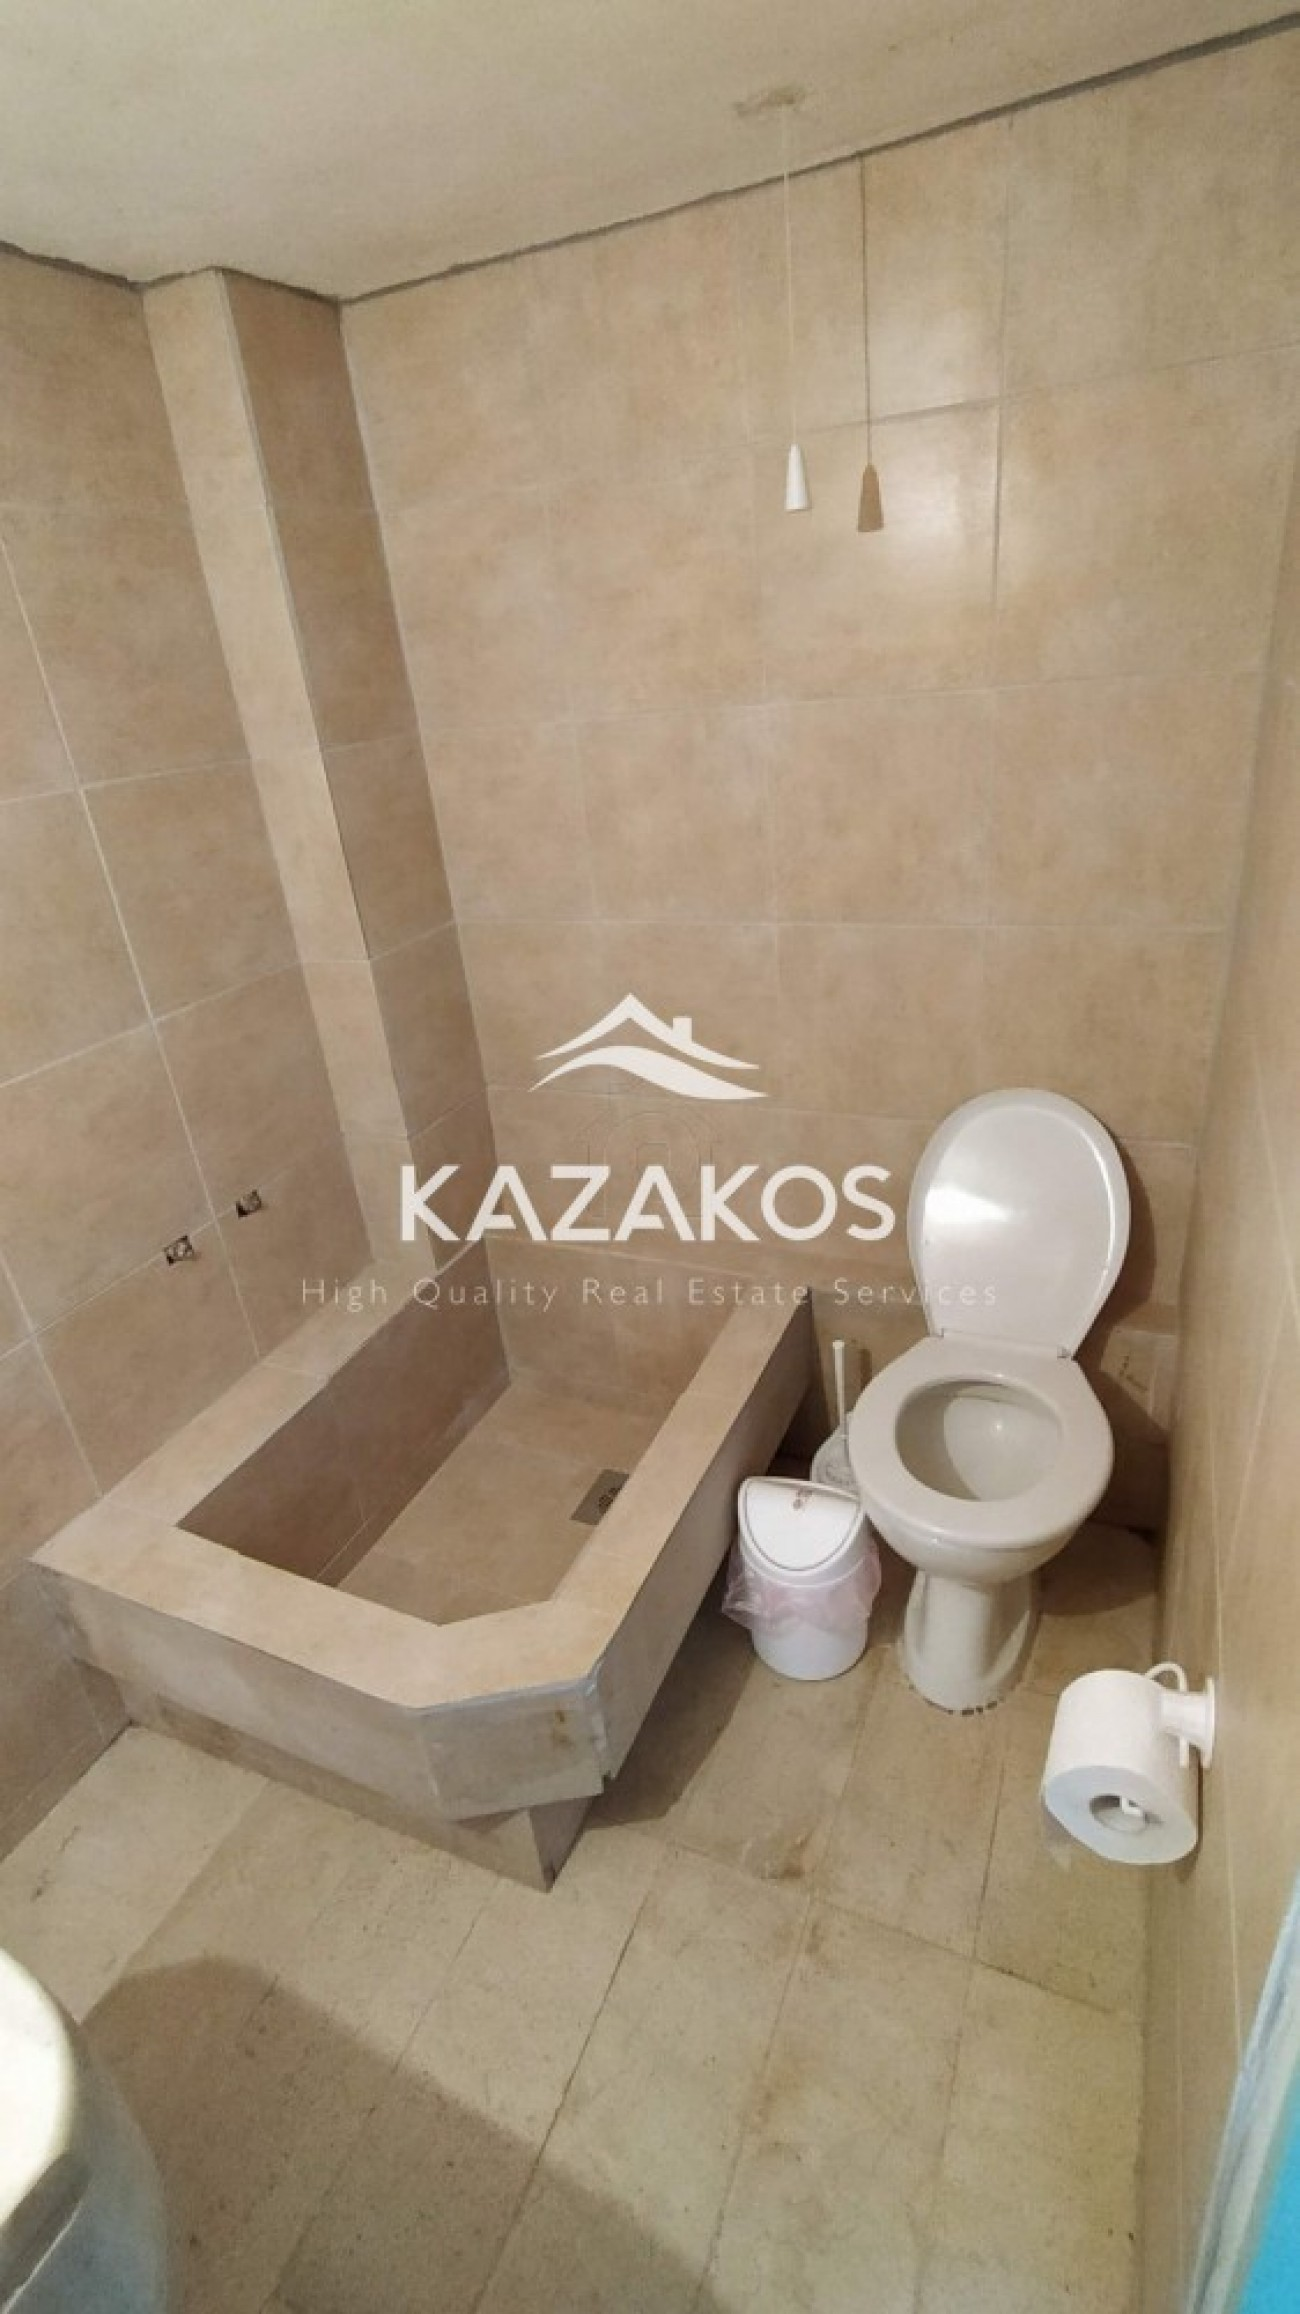 Townhouse for Sale in Chalandri, North & East Region of Athens, Greece